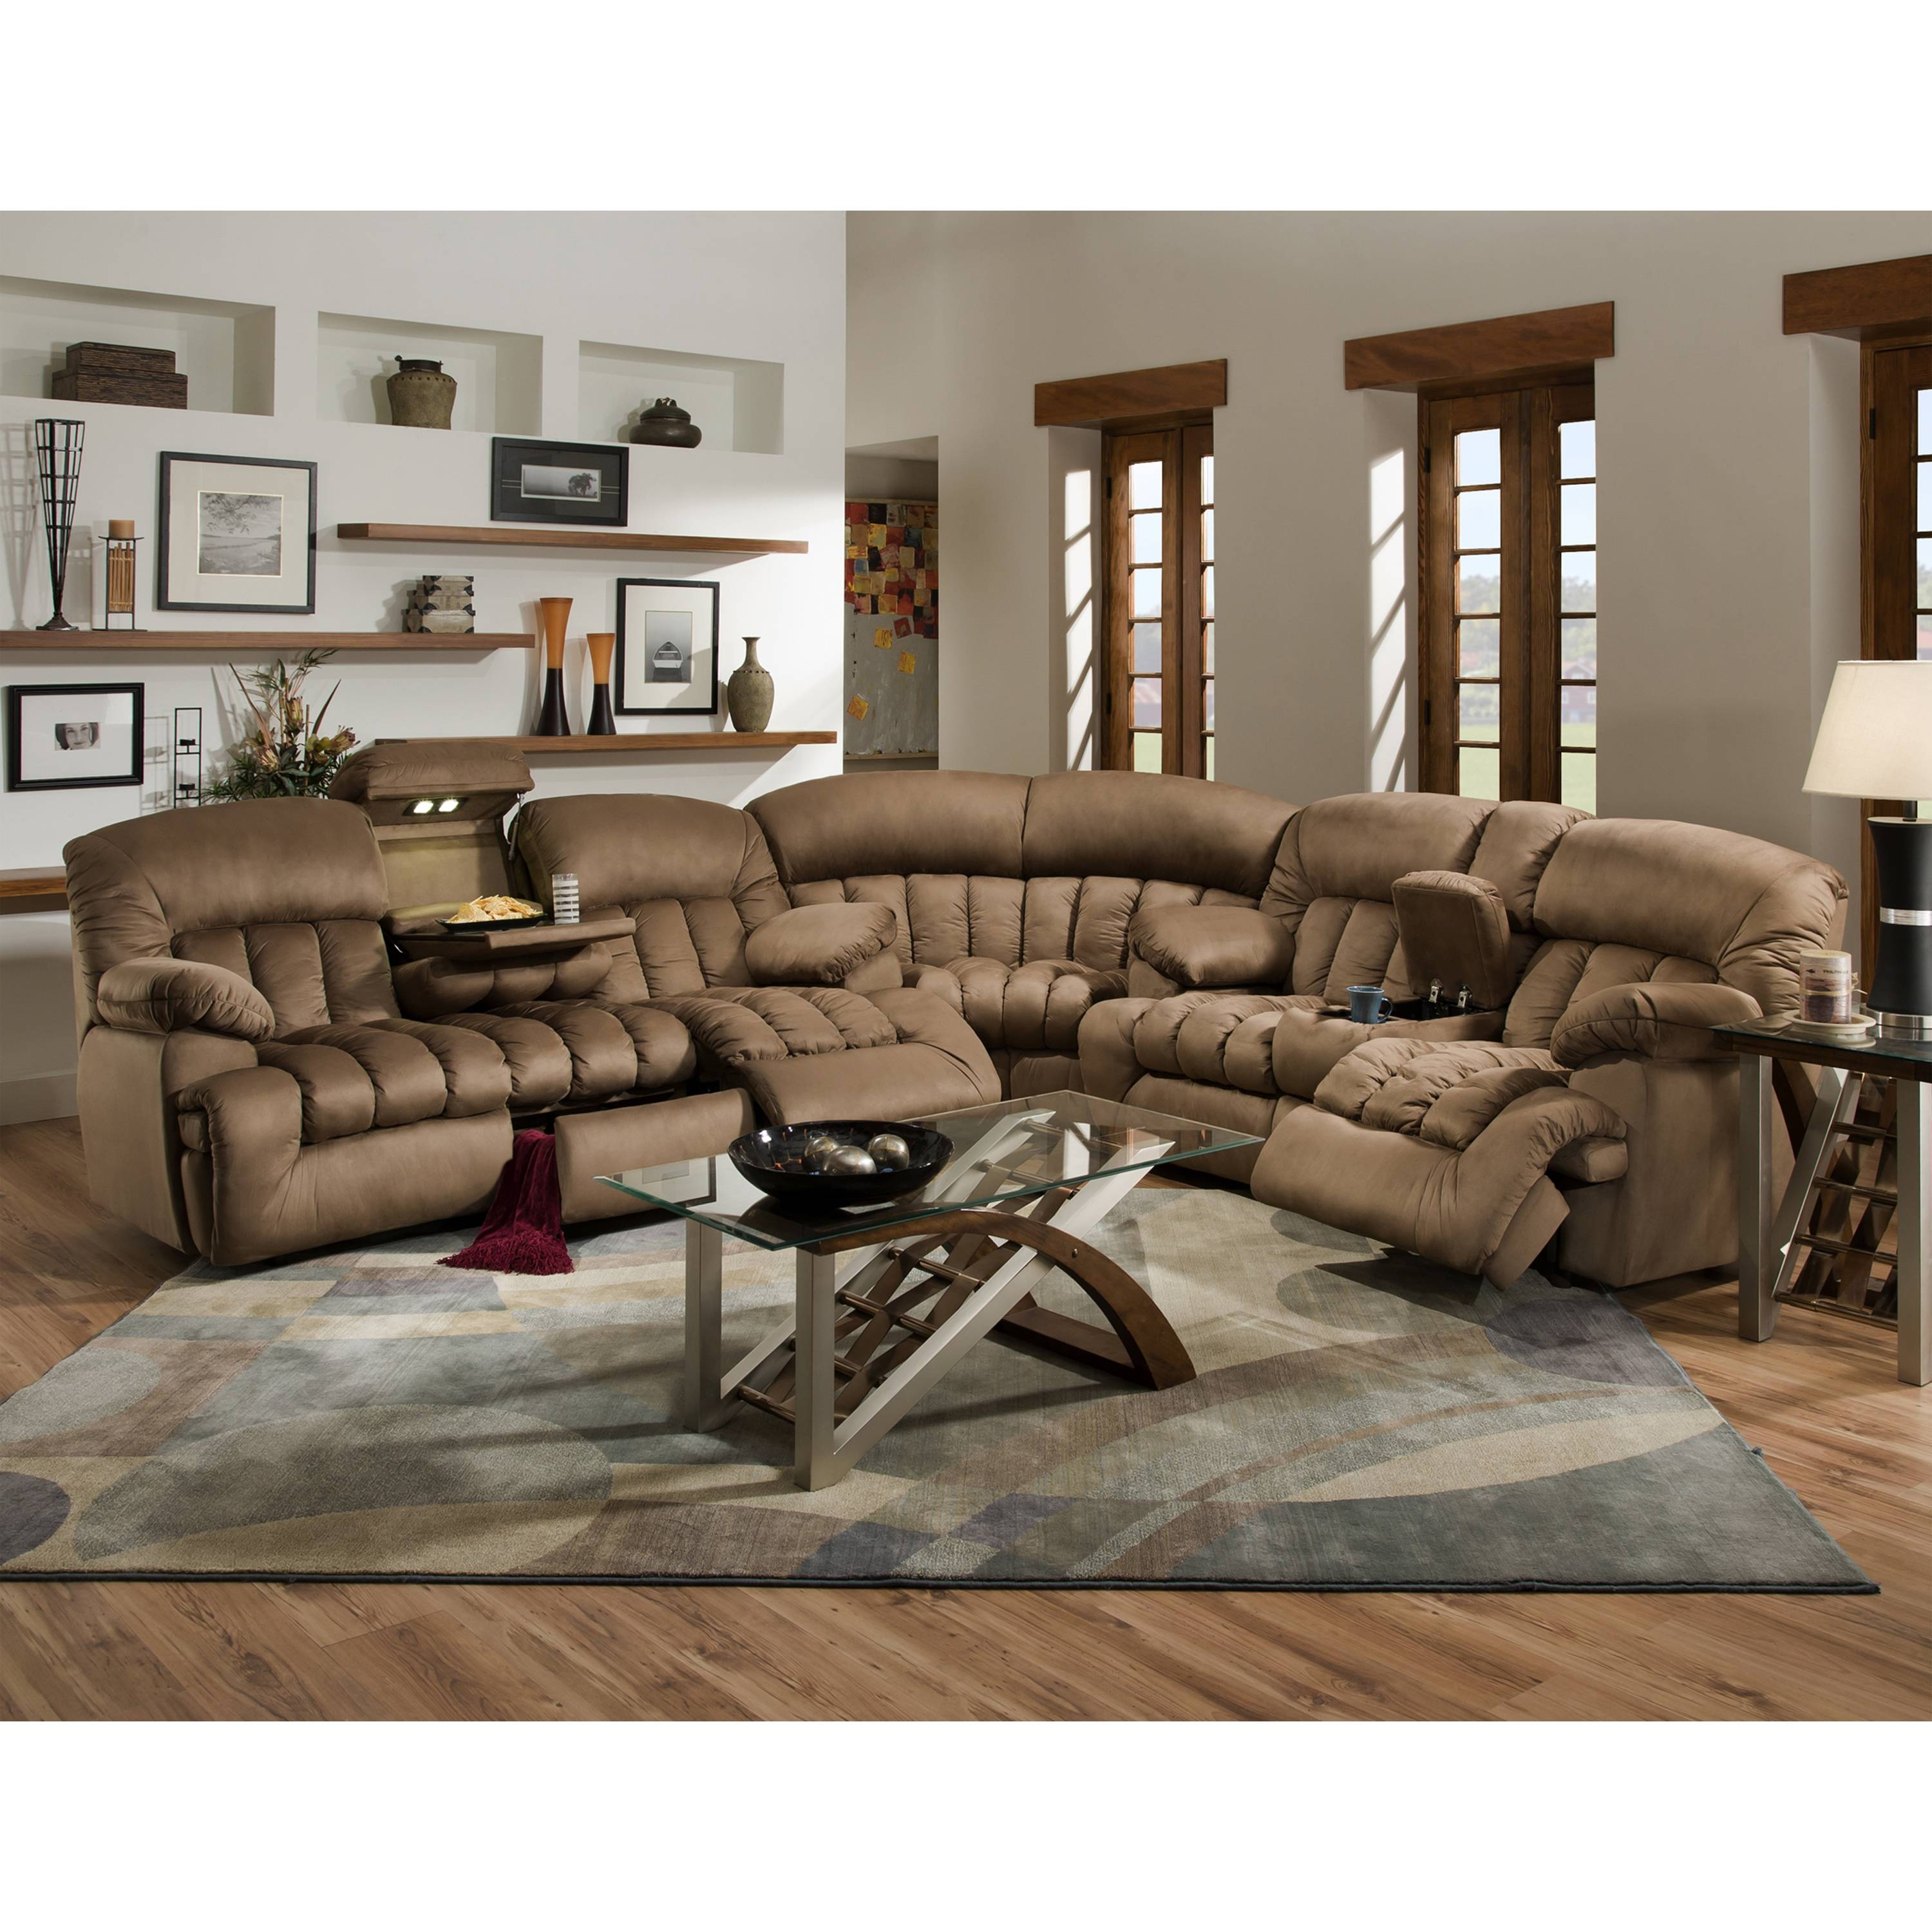 Sofas Center : Down Sectional Sofa Carrington Motion Brown Plush inside Goose Down Sectional Sofa (Image 17 of 25)